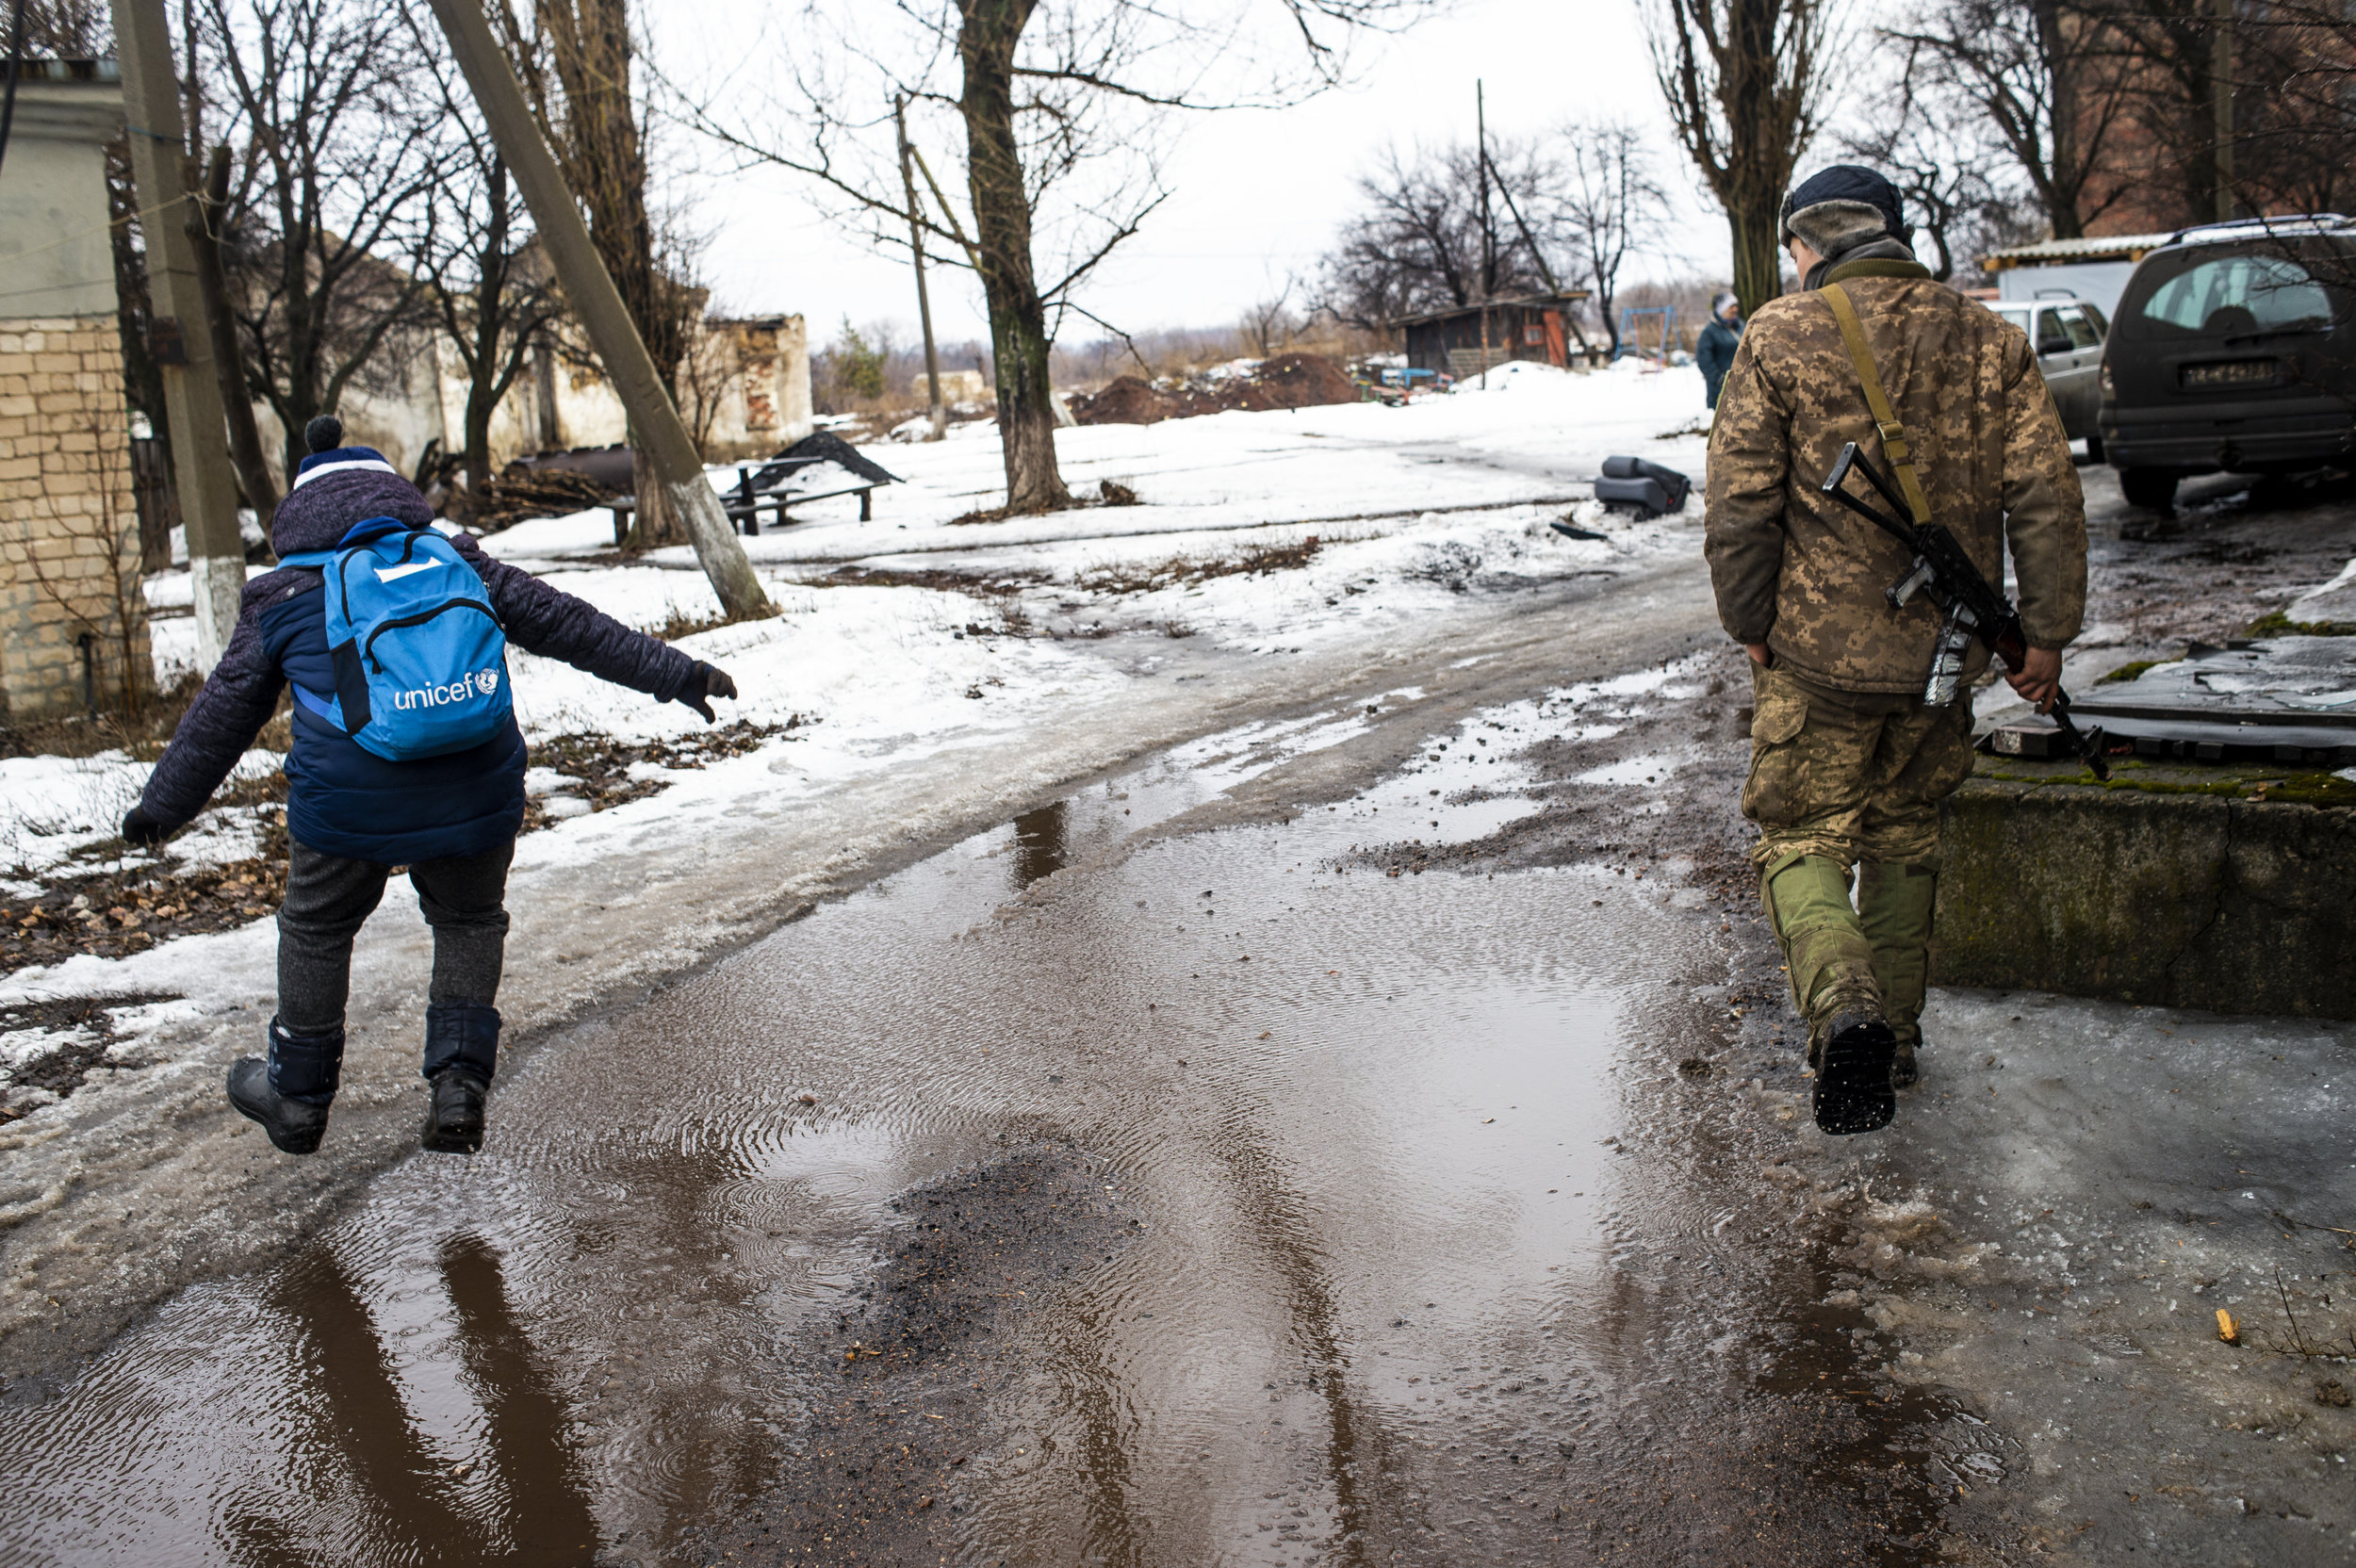 A student returning home from school in Zolote jumps over a puddle as he walks beside a soldier from the 54th Mechanized Rifle Brigade. The young boy lived only a hundred meters from Point Zero and made the walk to and from school alone.